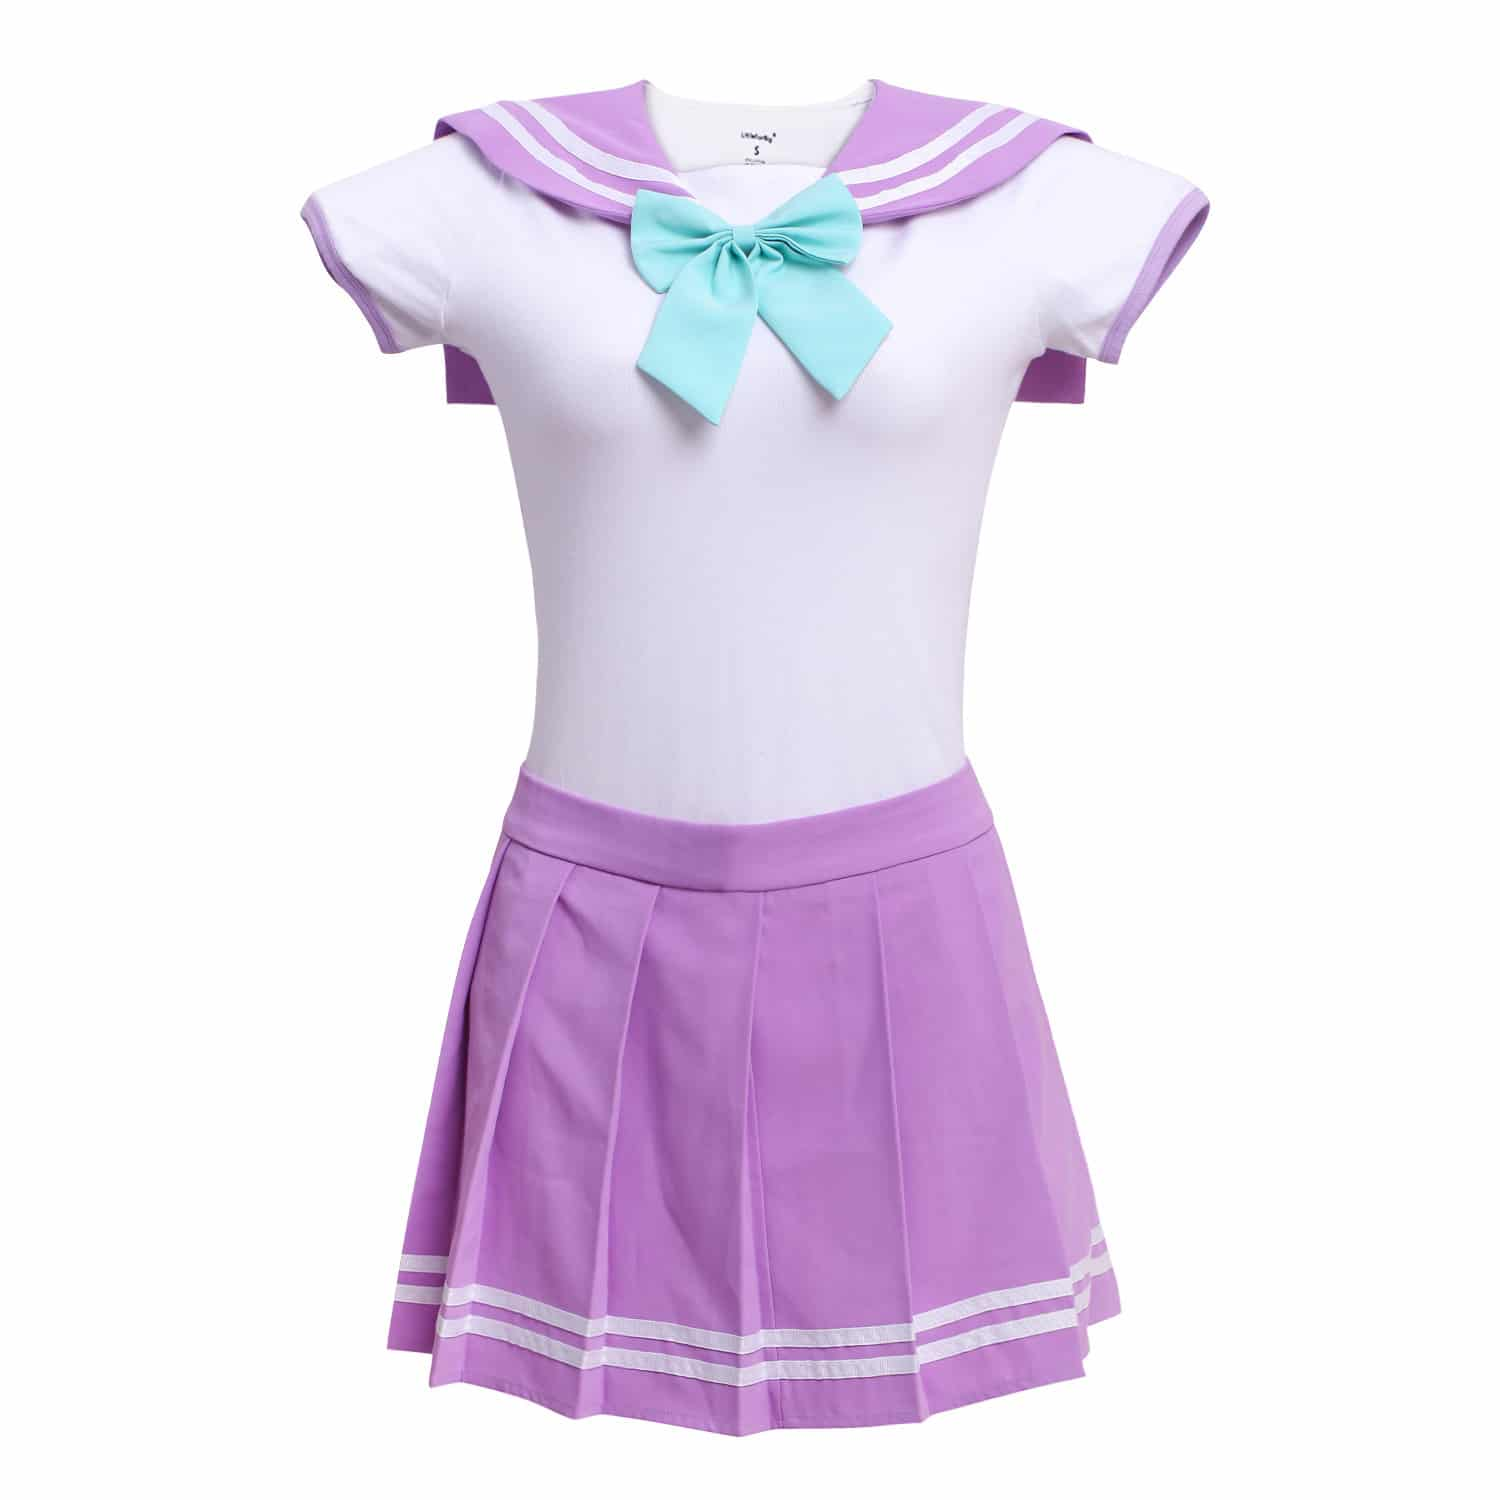 Cosplay Magical Onesie Purple set - LittleForBig ABDL Adult Baby ... 0e766931a